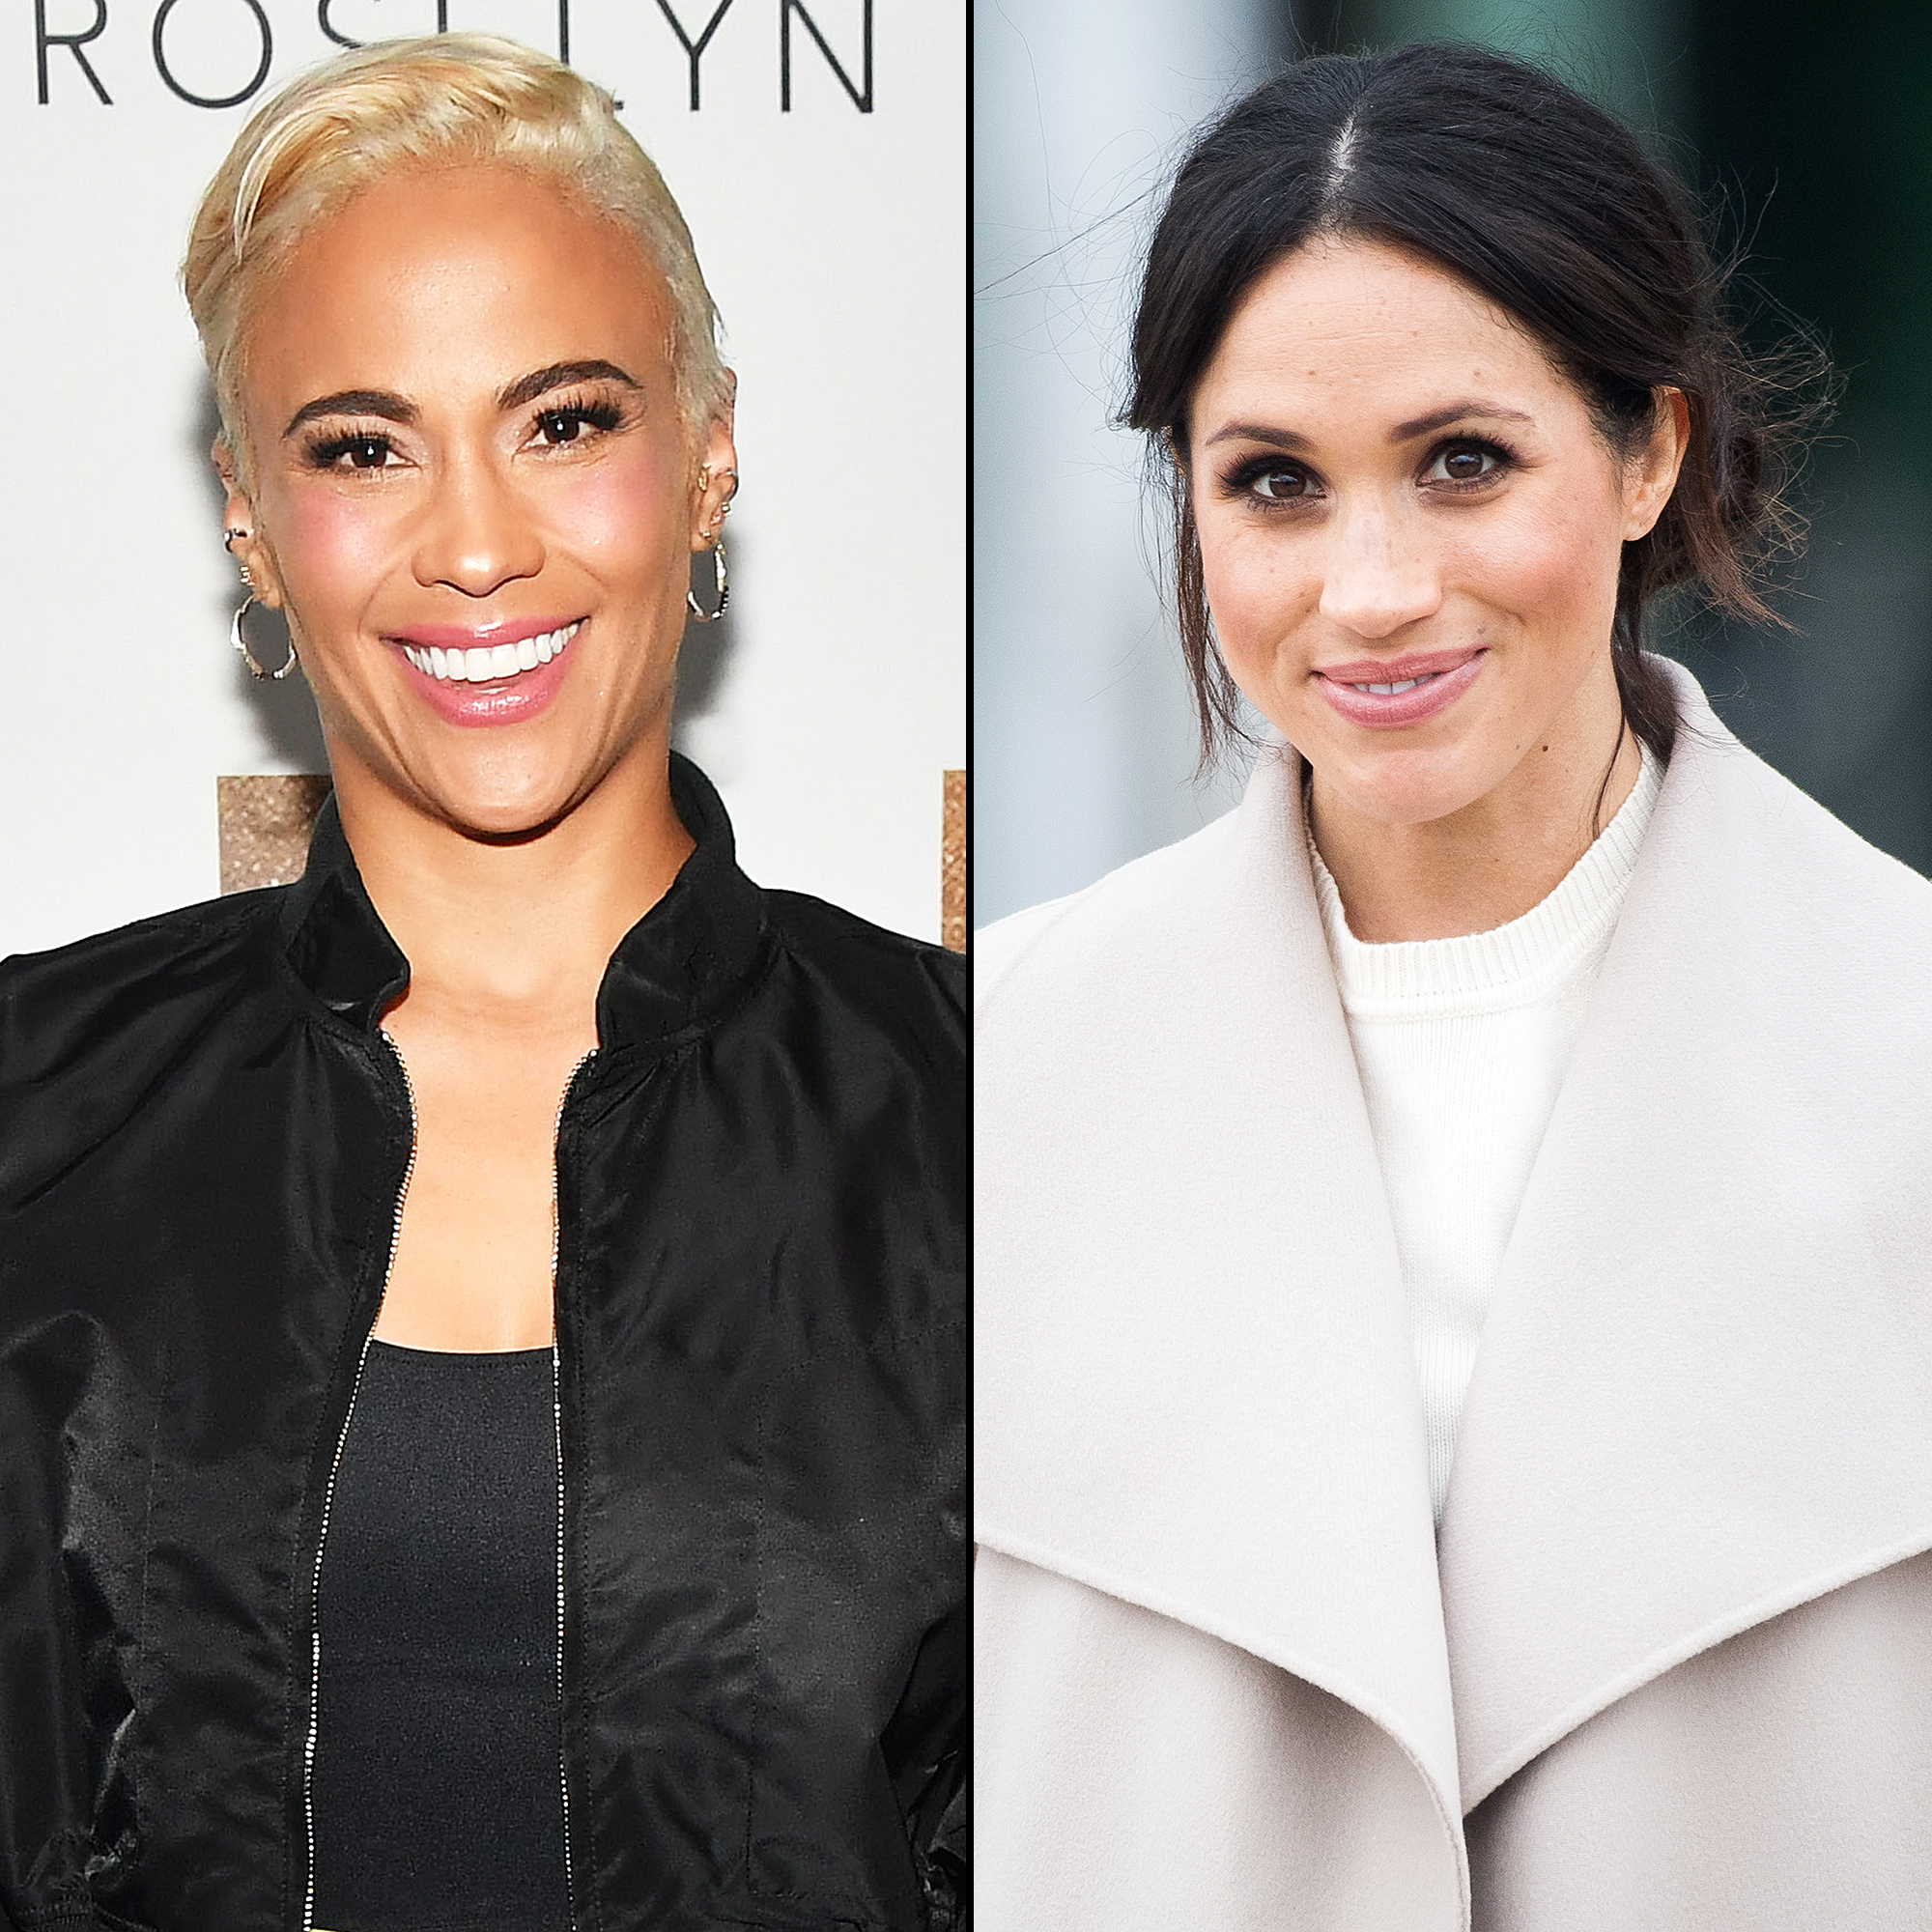 Meghan Markle was 'meant to be royal': Paula Patton